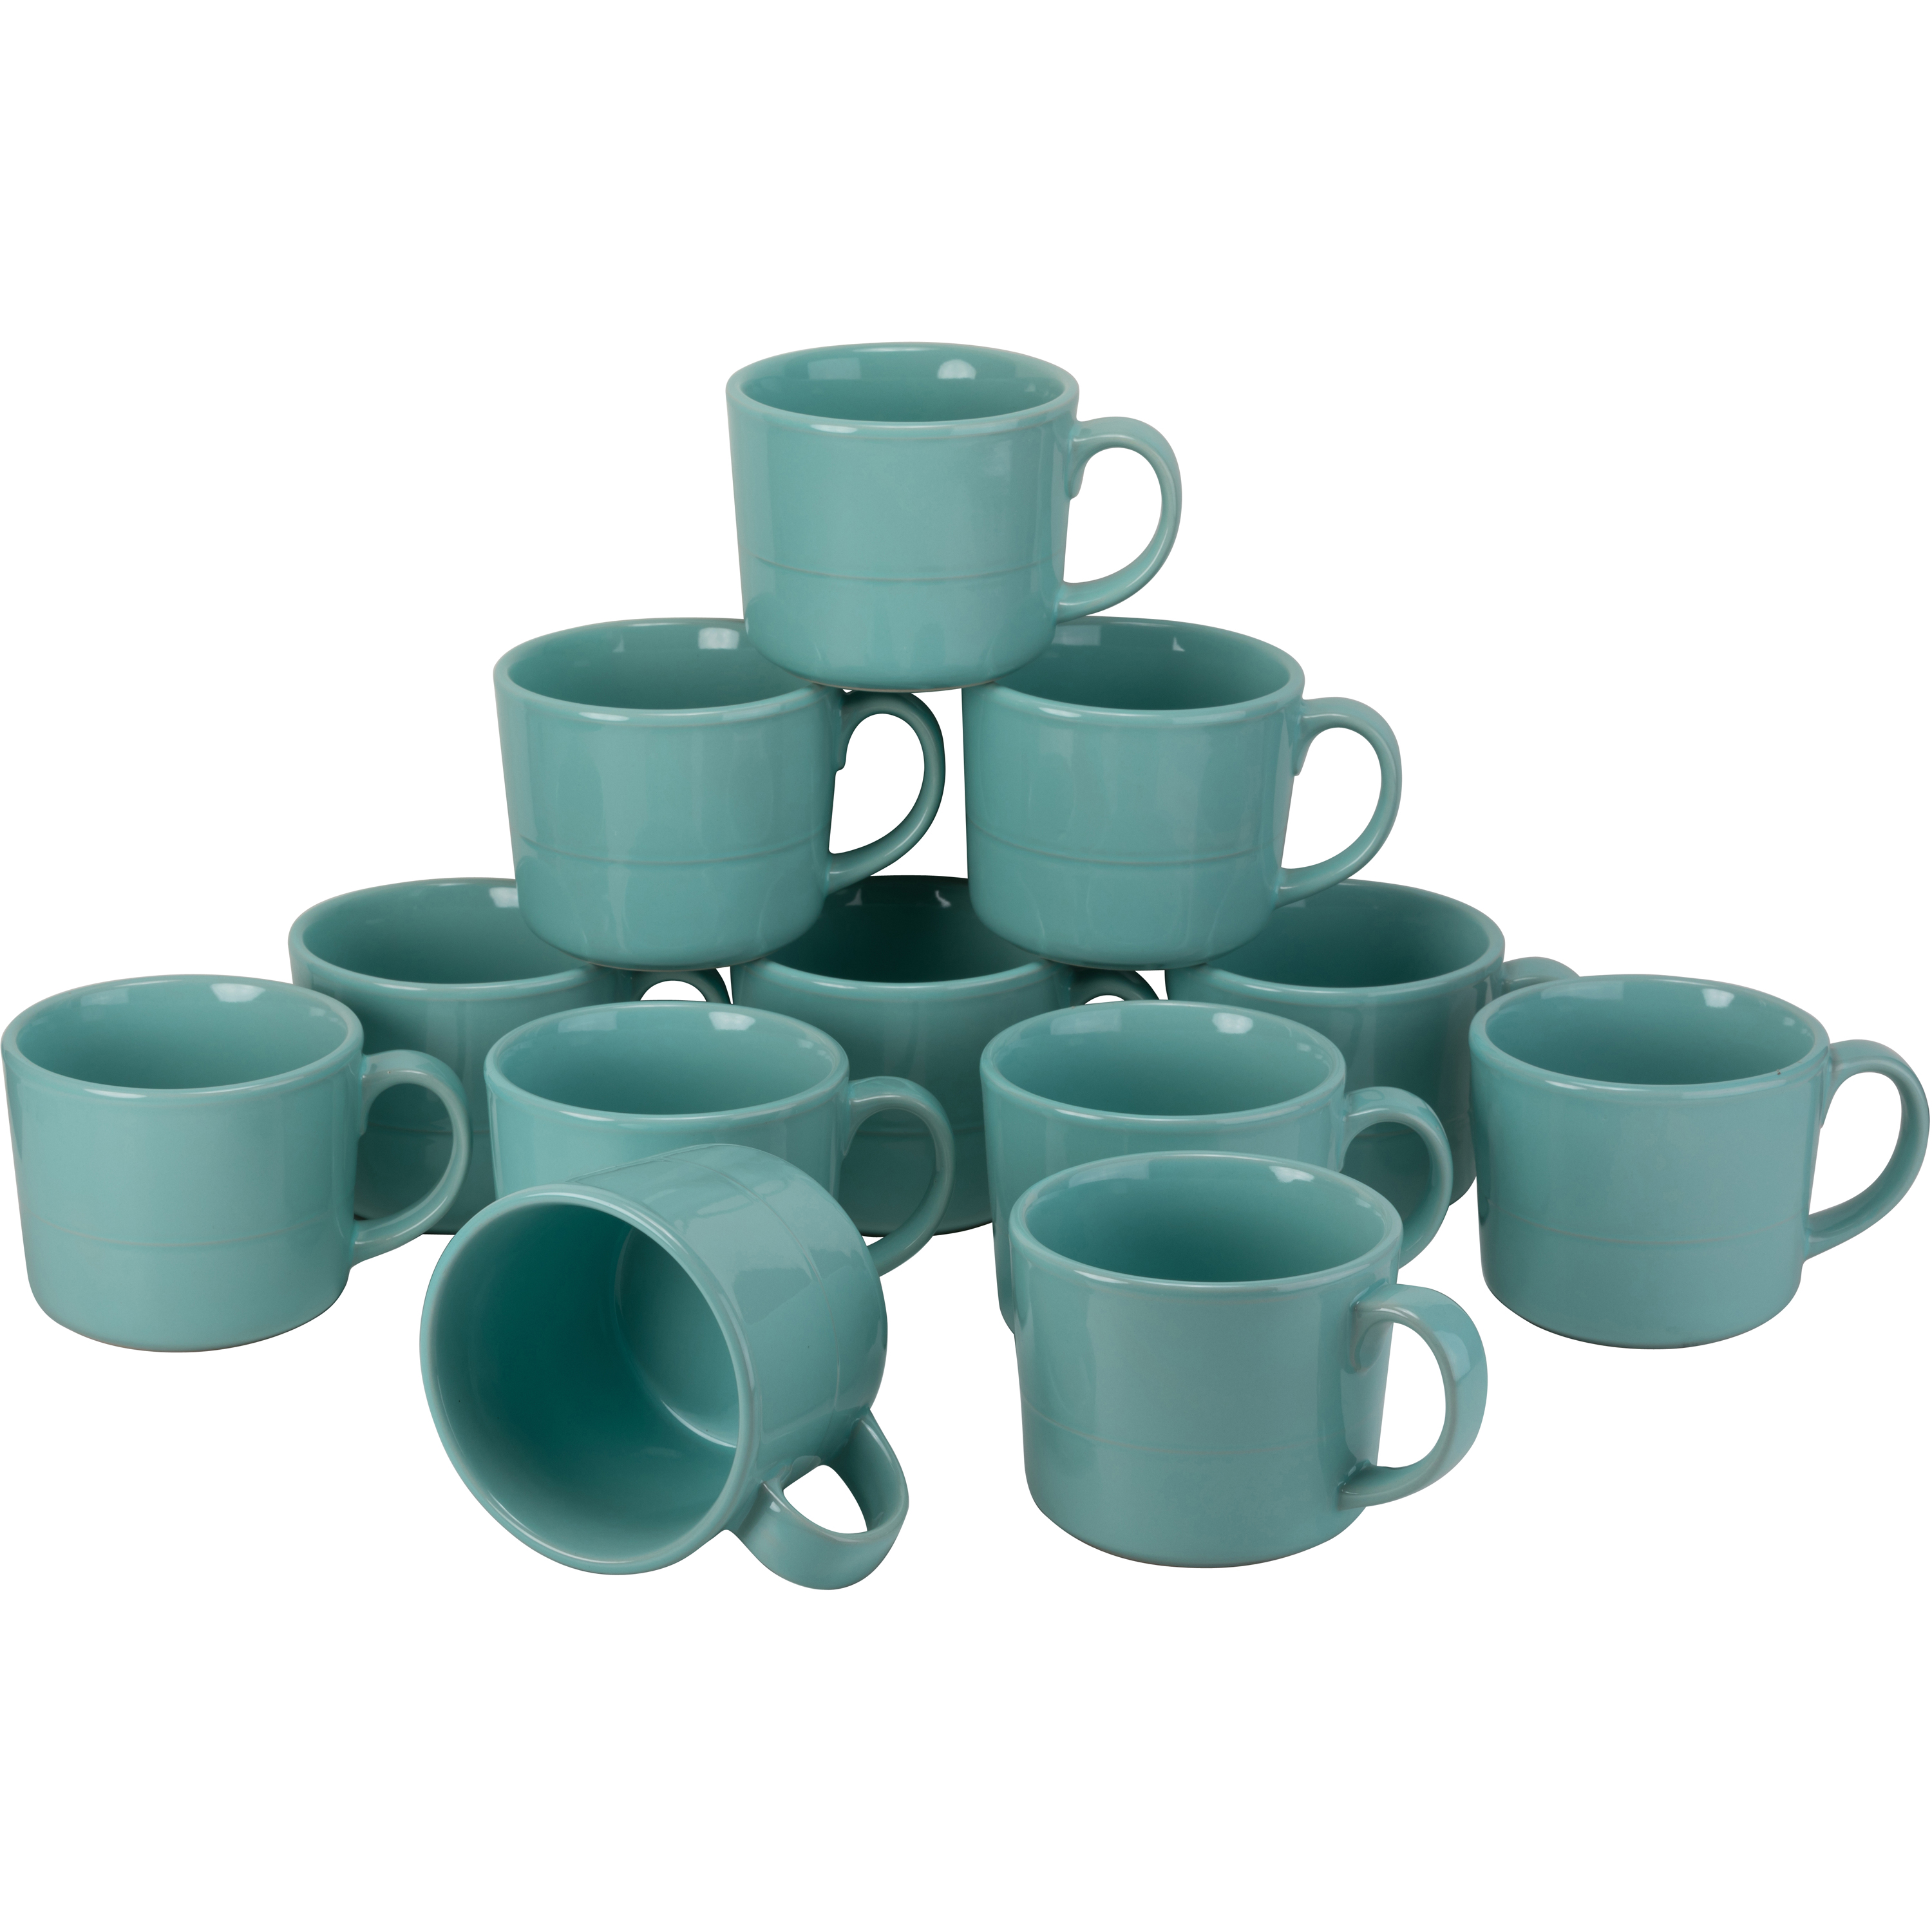 10 Strawberry Street Double Line Catering Pack, Set of 12 Gray Mugs12 oz by 10 Strawberry Street